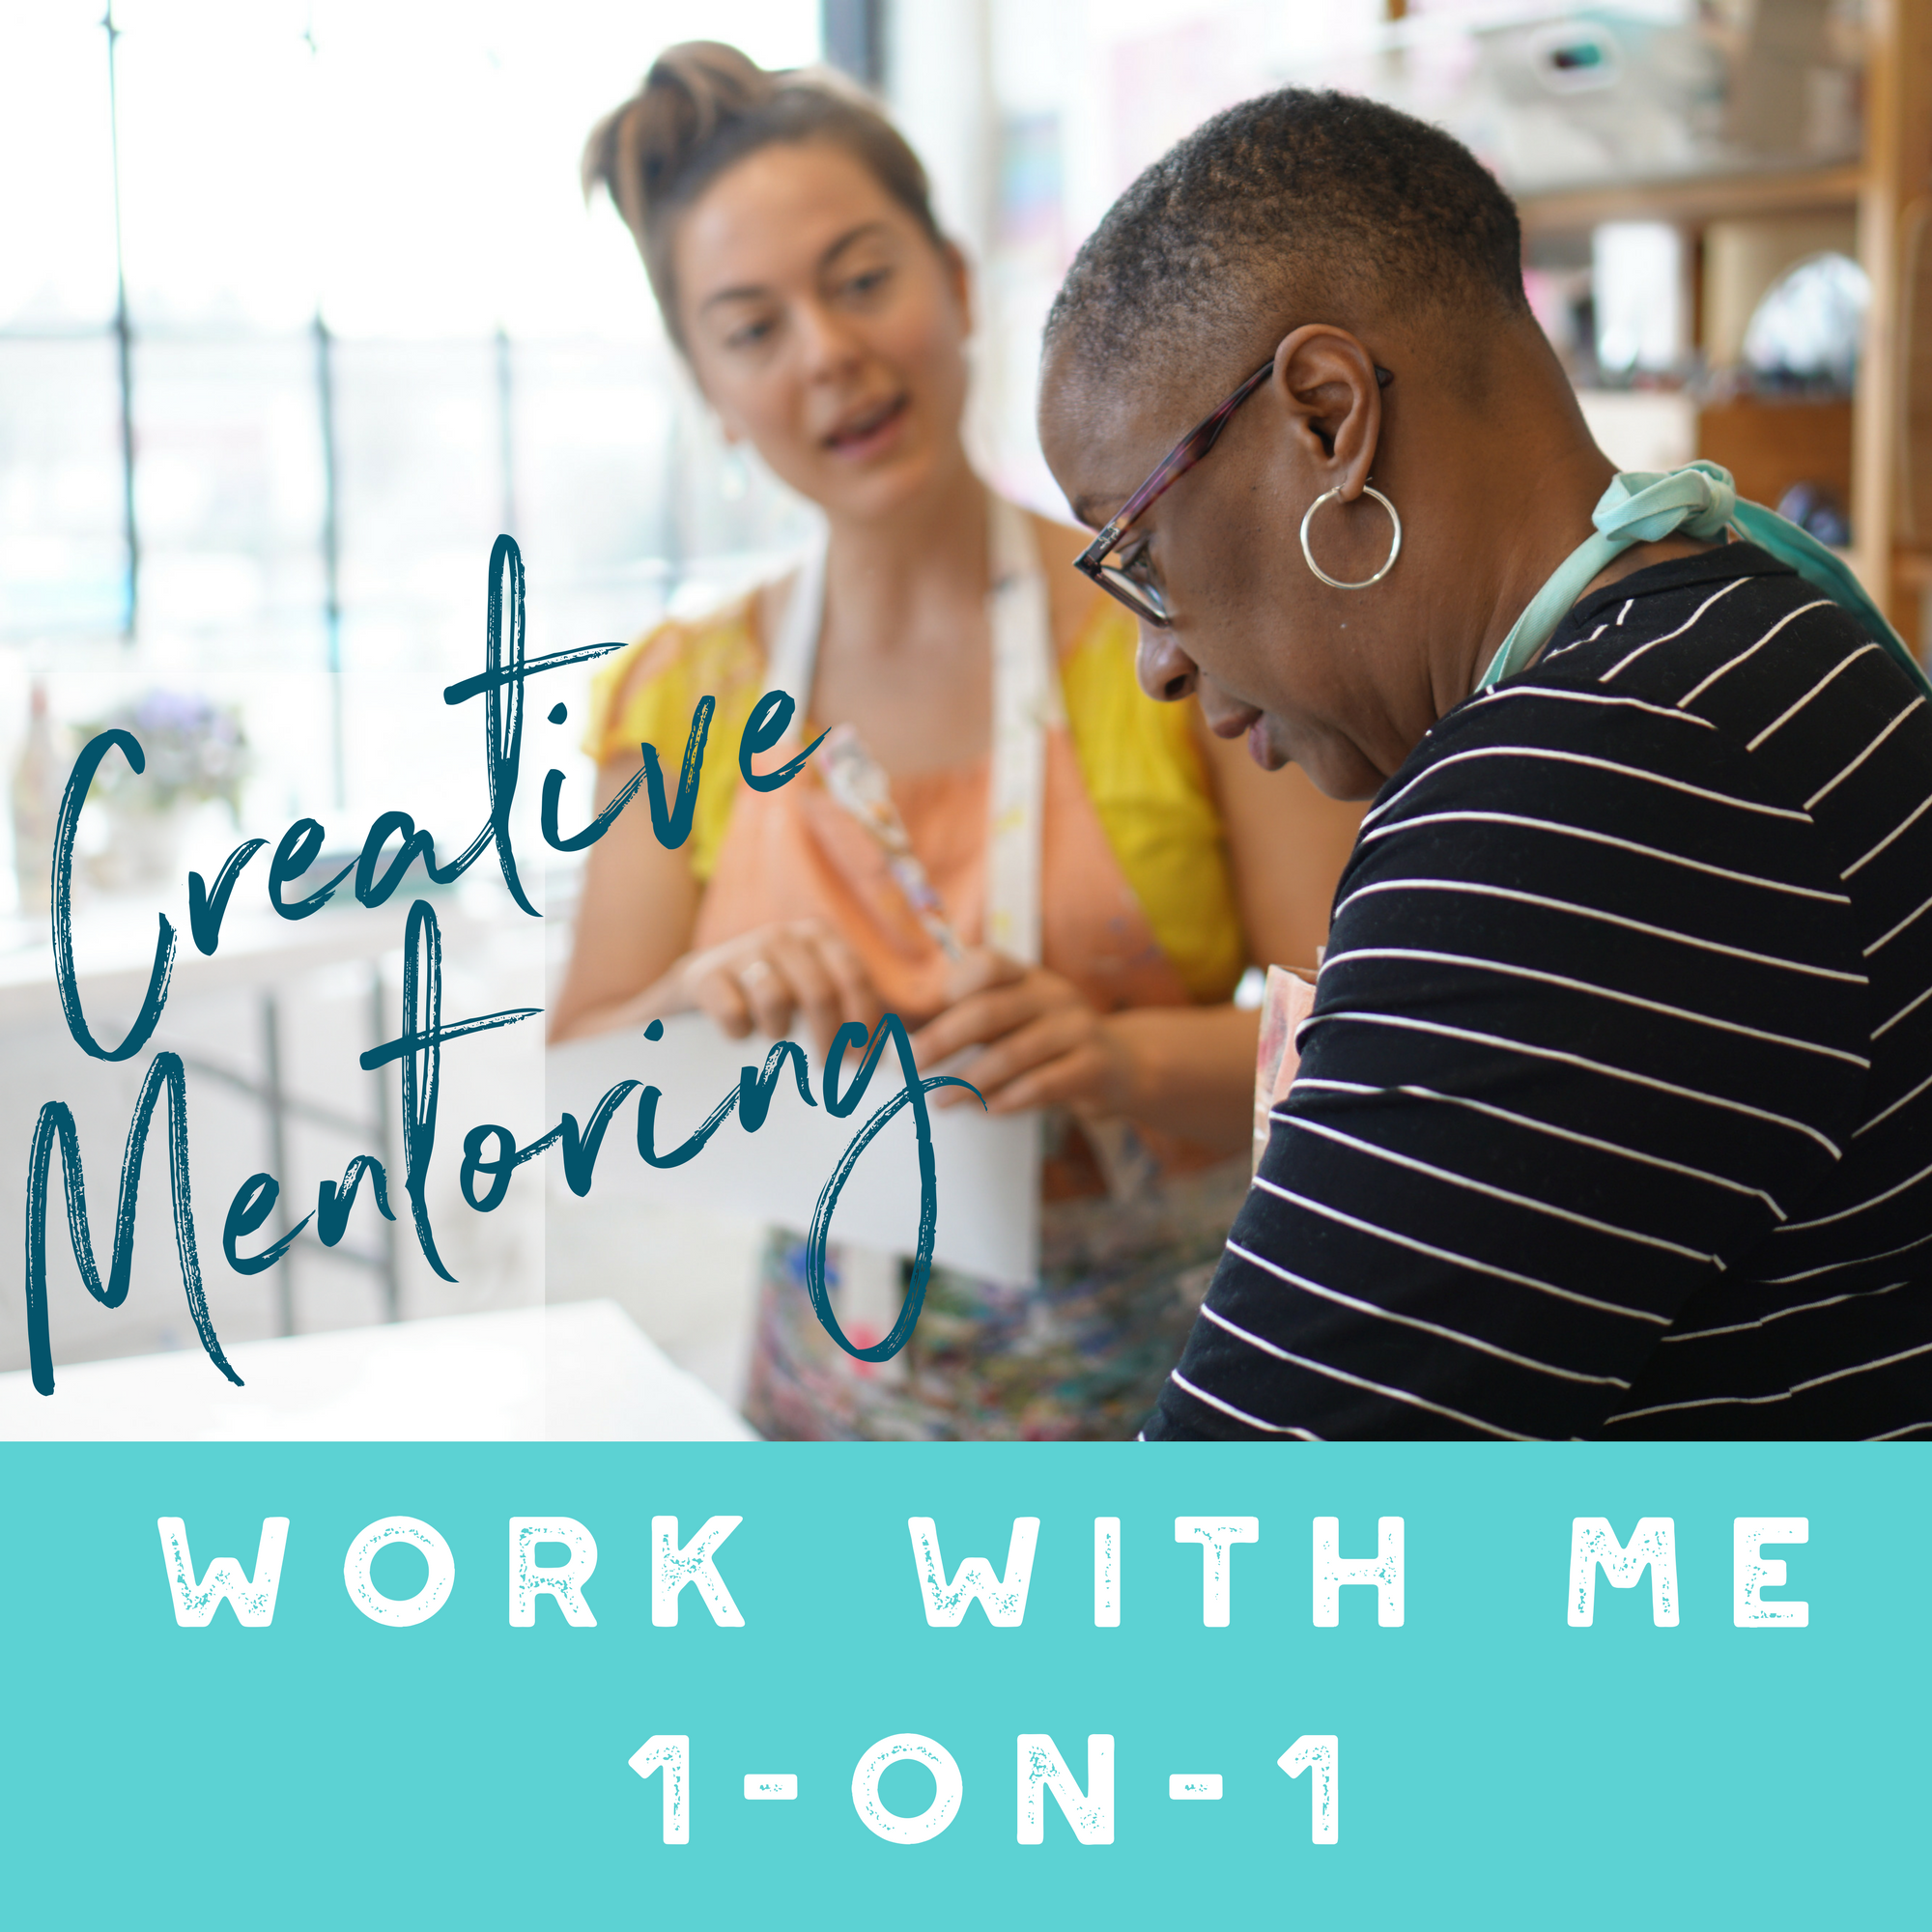 Work With Me - Creative Mentoring 1-on-1.png